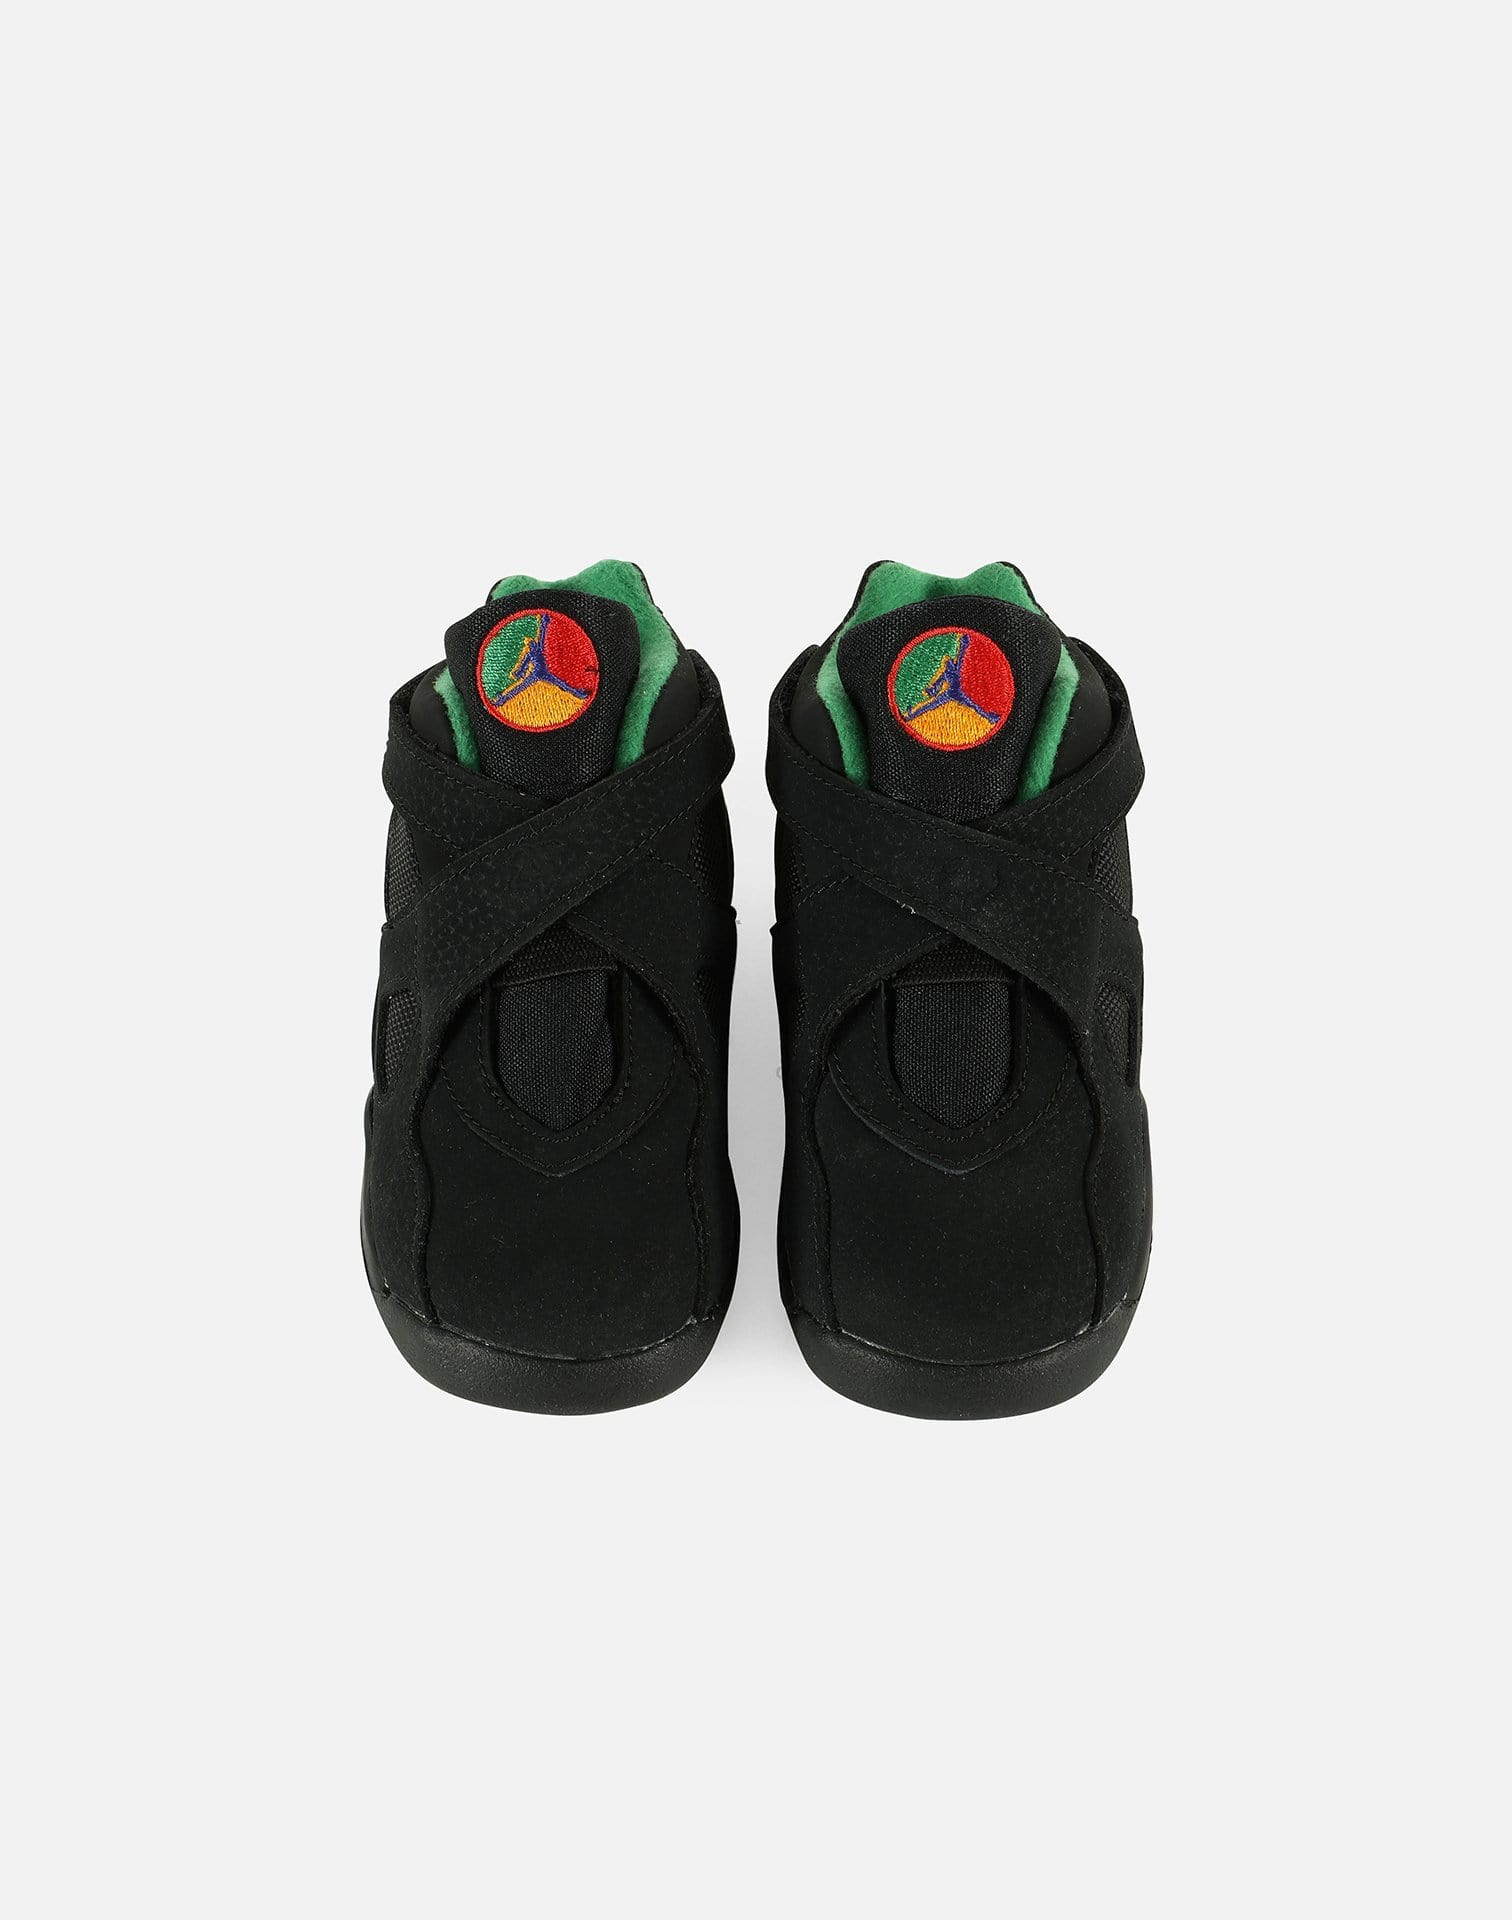 Jordan Air Jordan Retro 8 'Air Raid 2' Infant